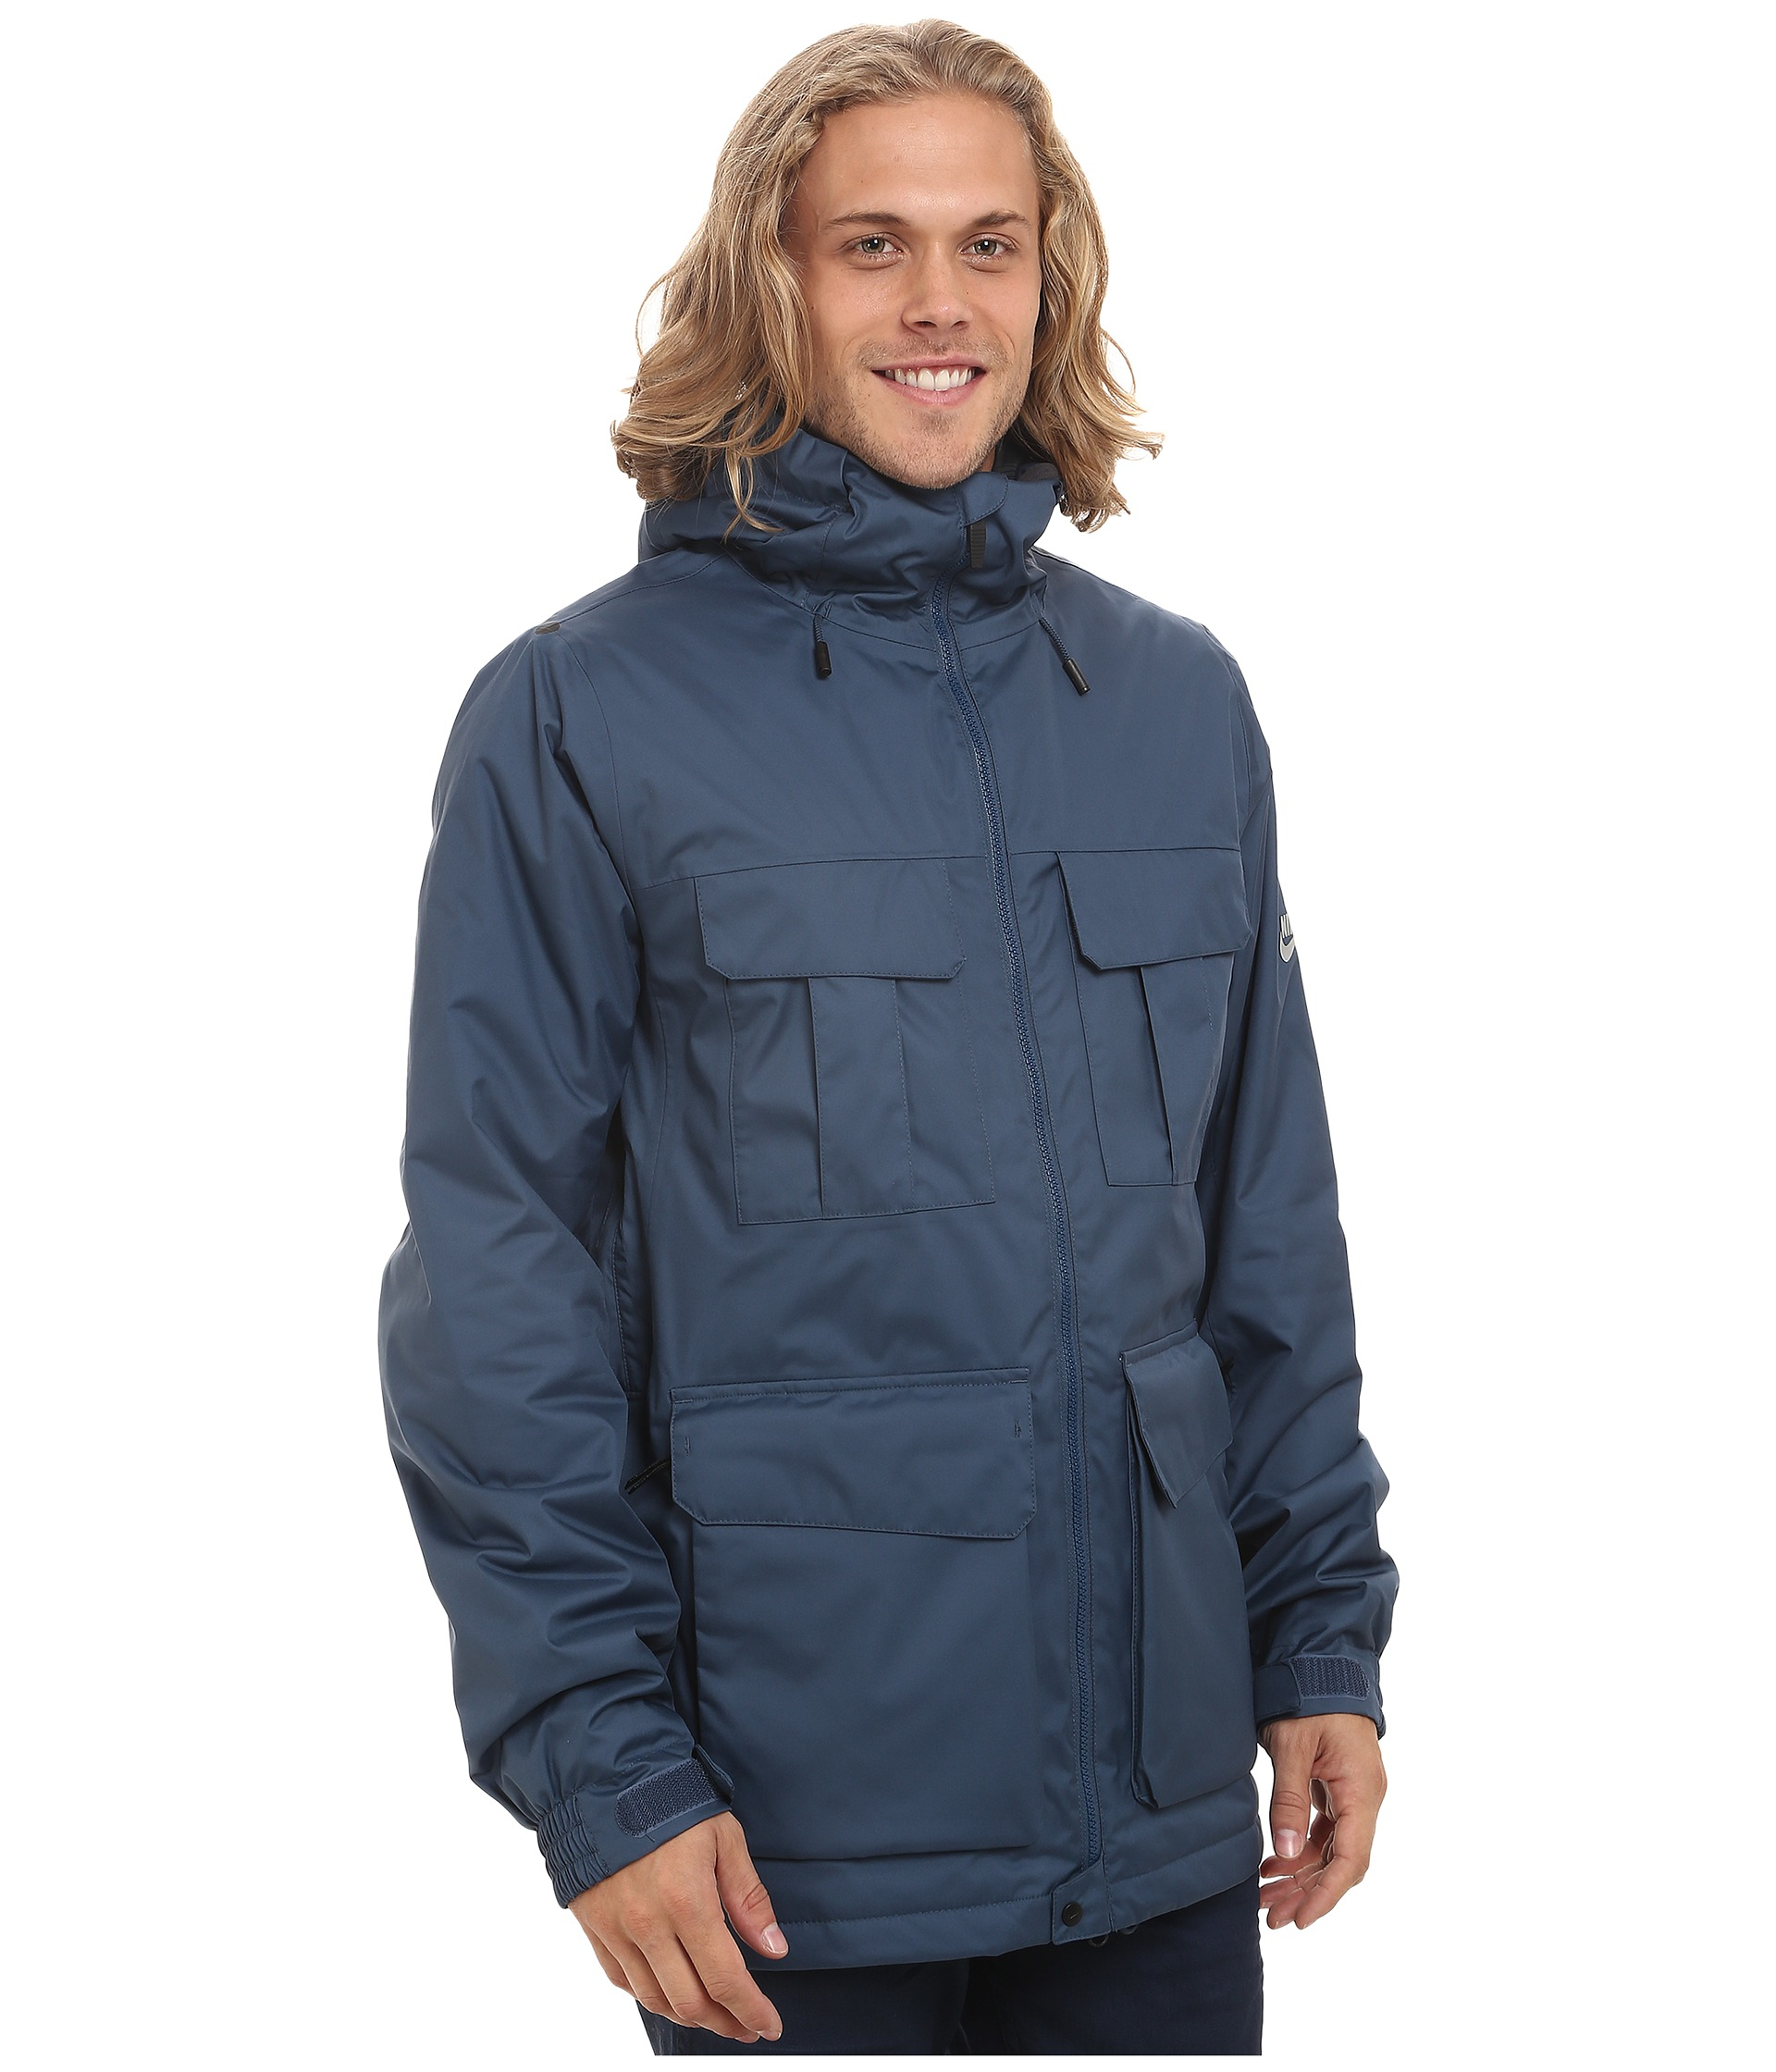 cc6749f5c892 Lyst - Nike Sb Empire Jacket in Blue for Men